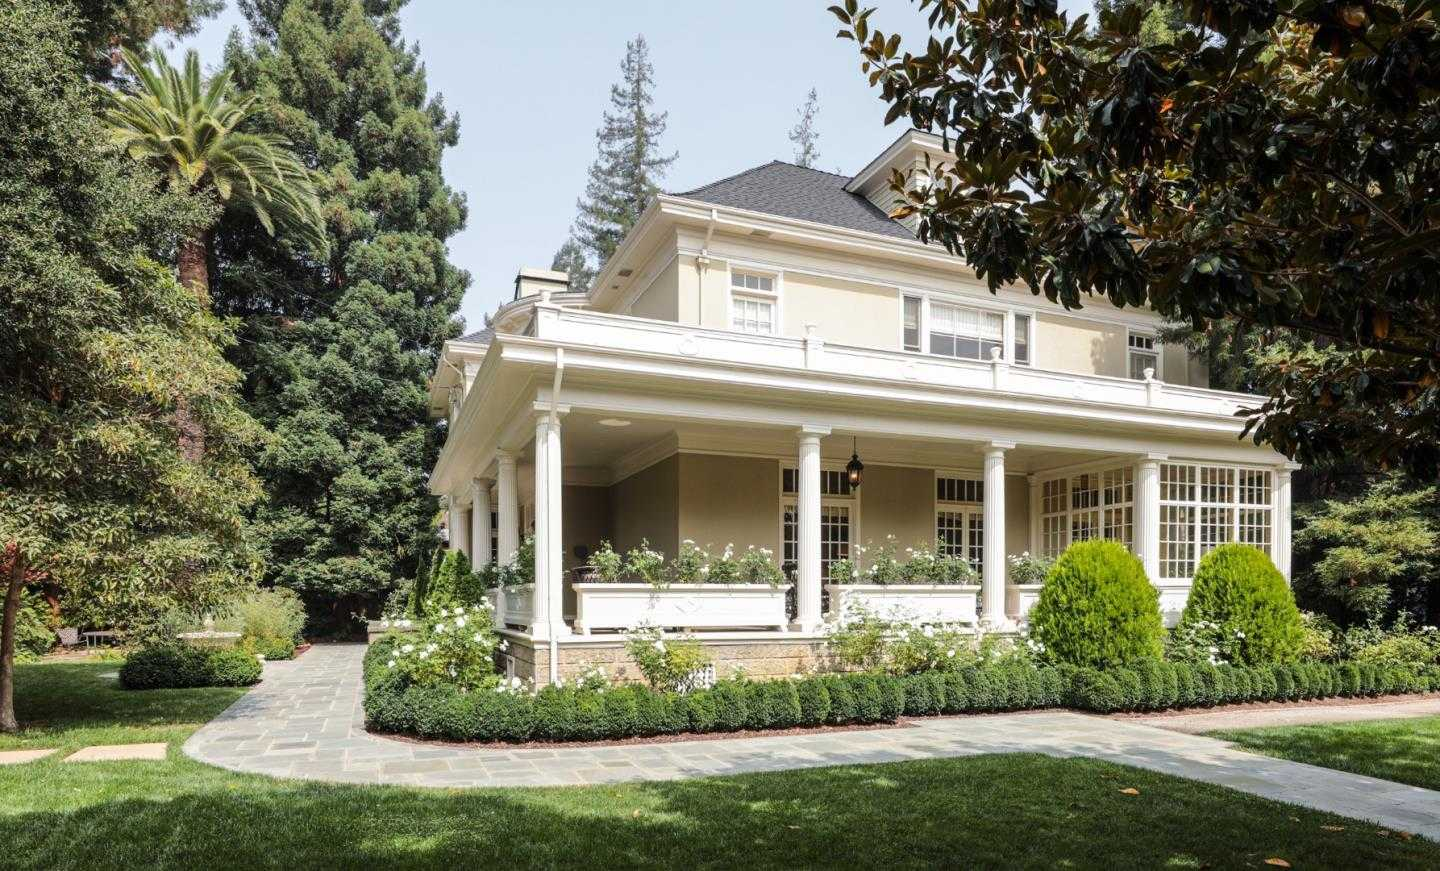 $12,300,000 - 8Br/5Ba -  for Sale in Palo Alto